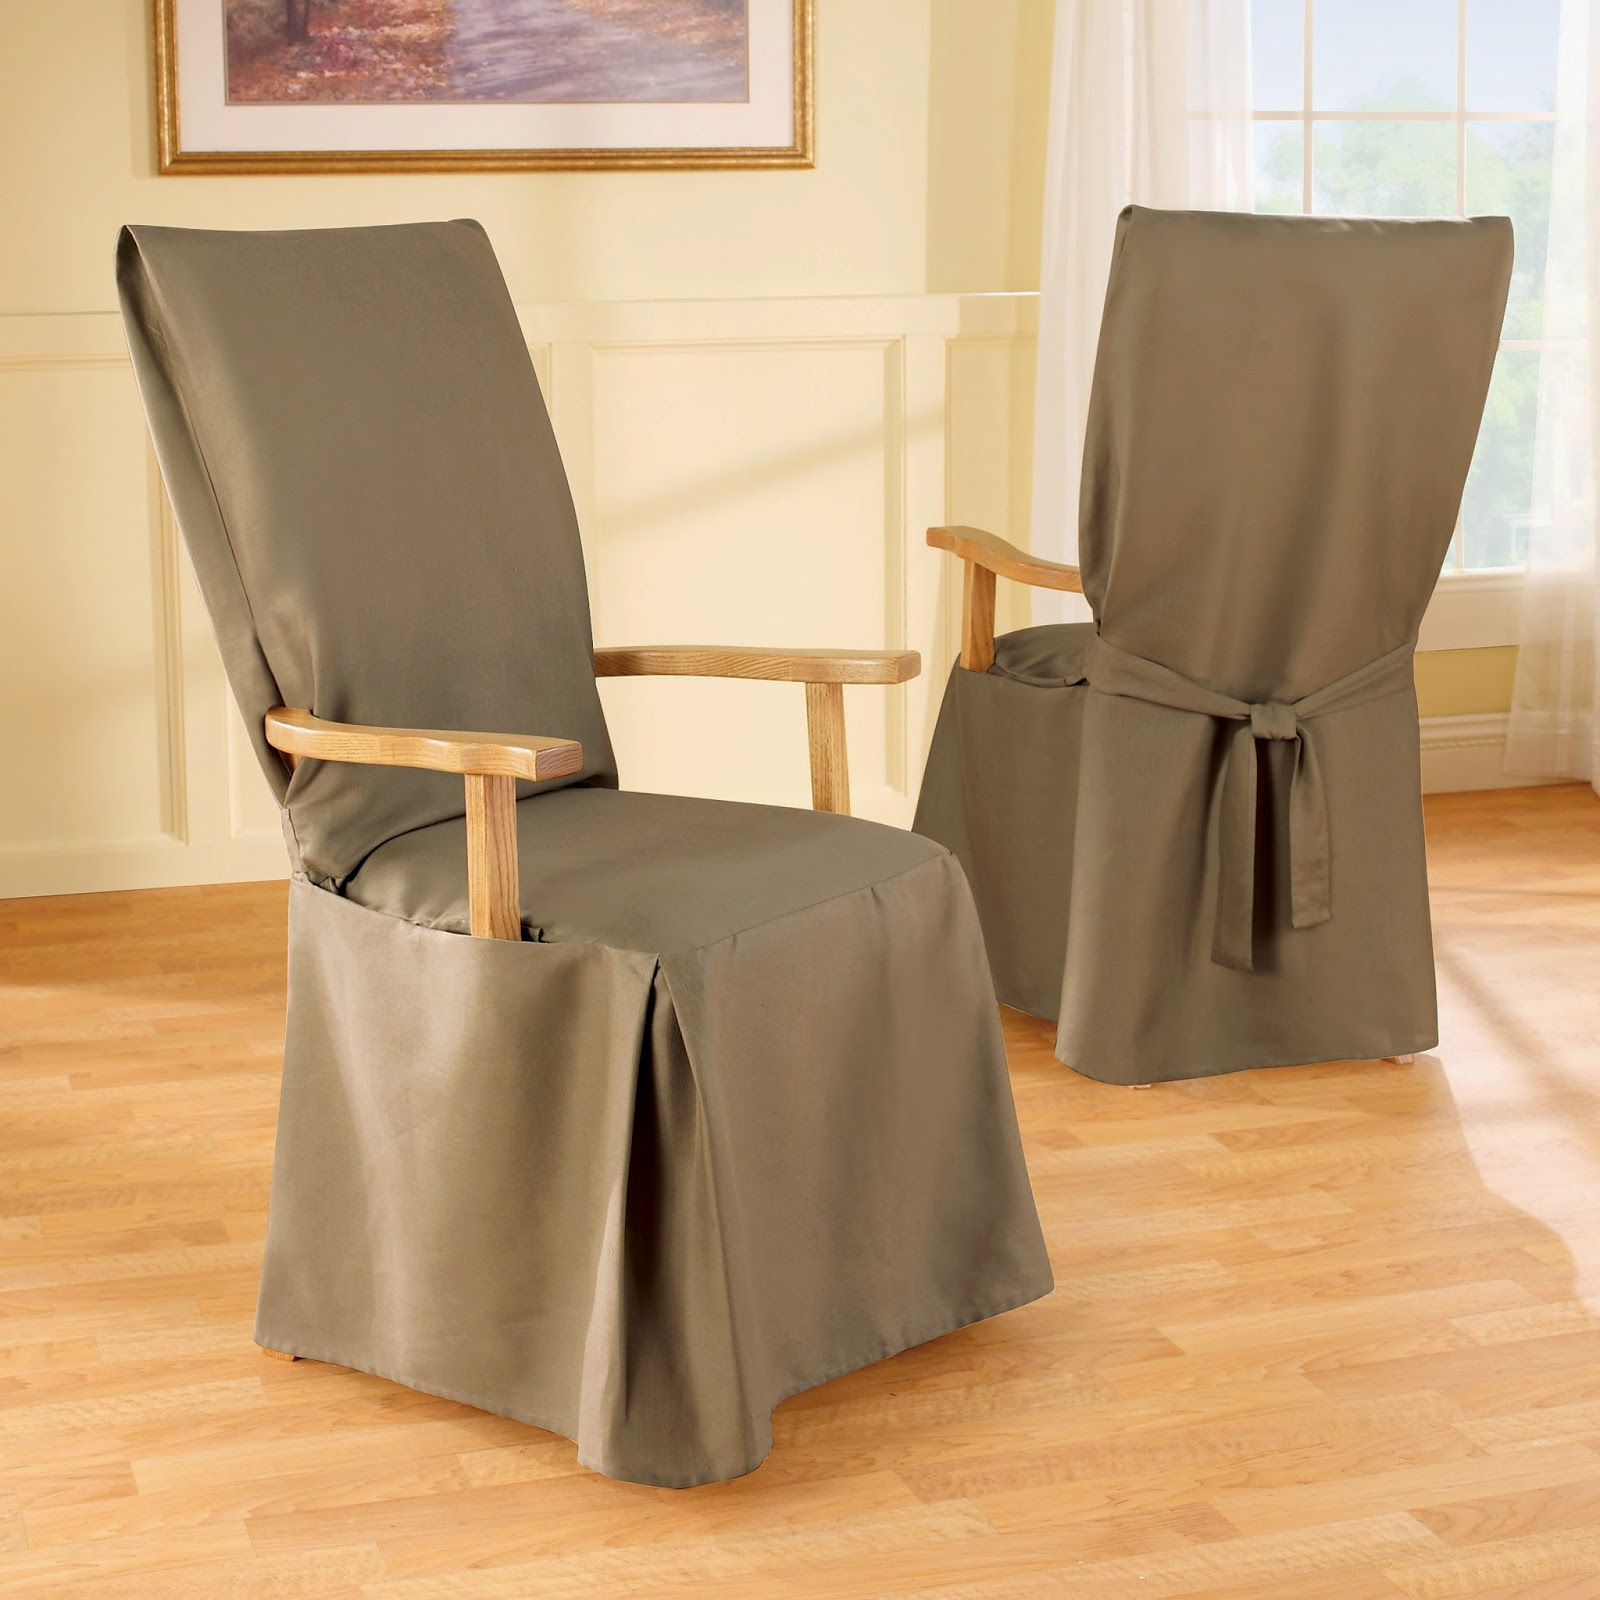 dining room chair covers with arms instant knowledge